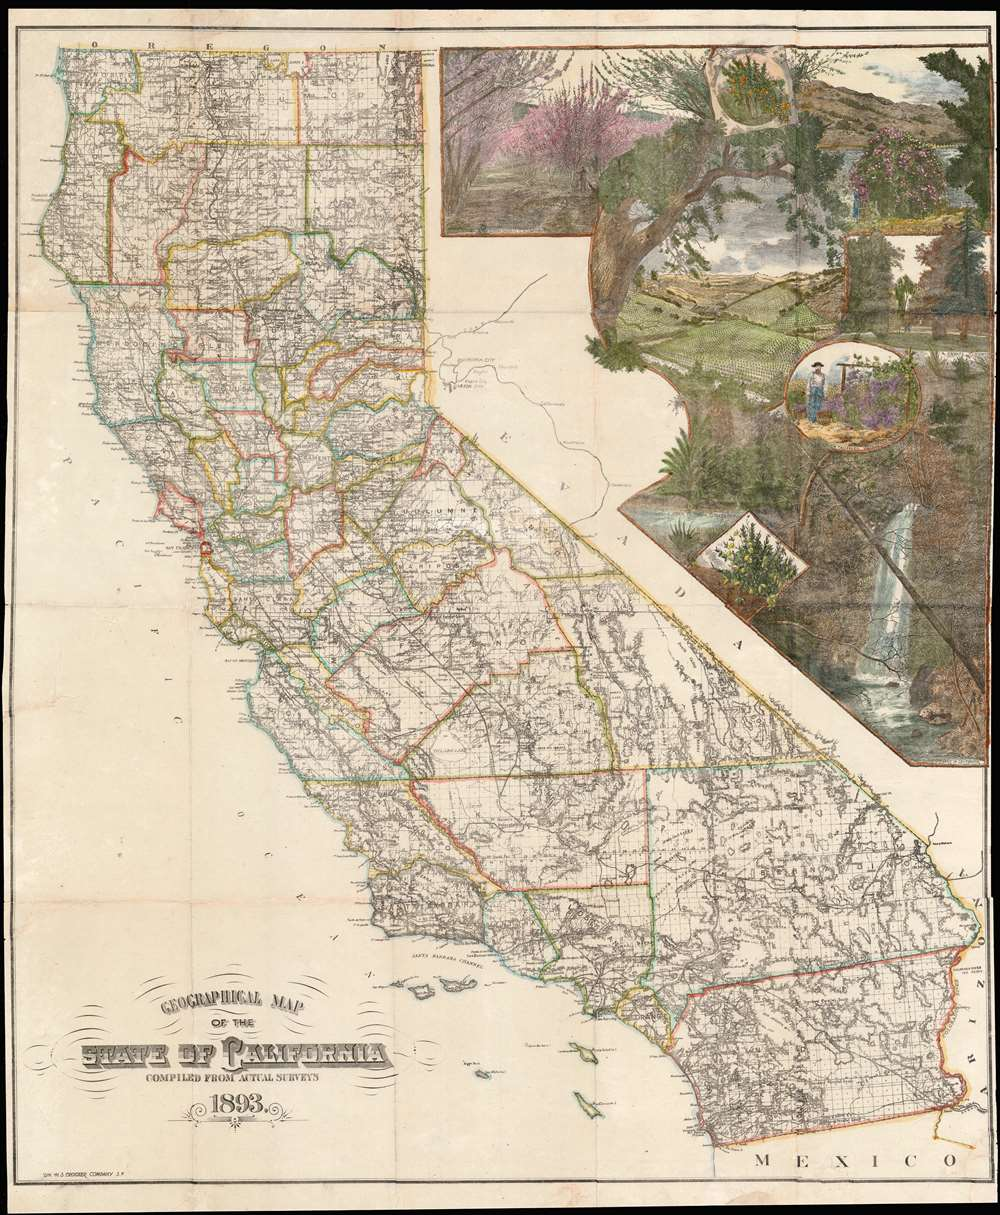 Geographical Map of the State of California Compiled from Actual Surveys. - Main View